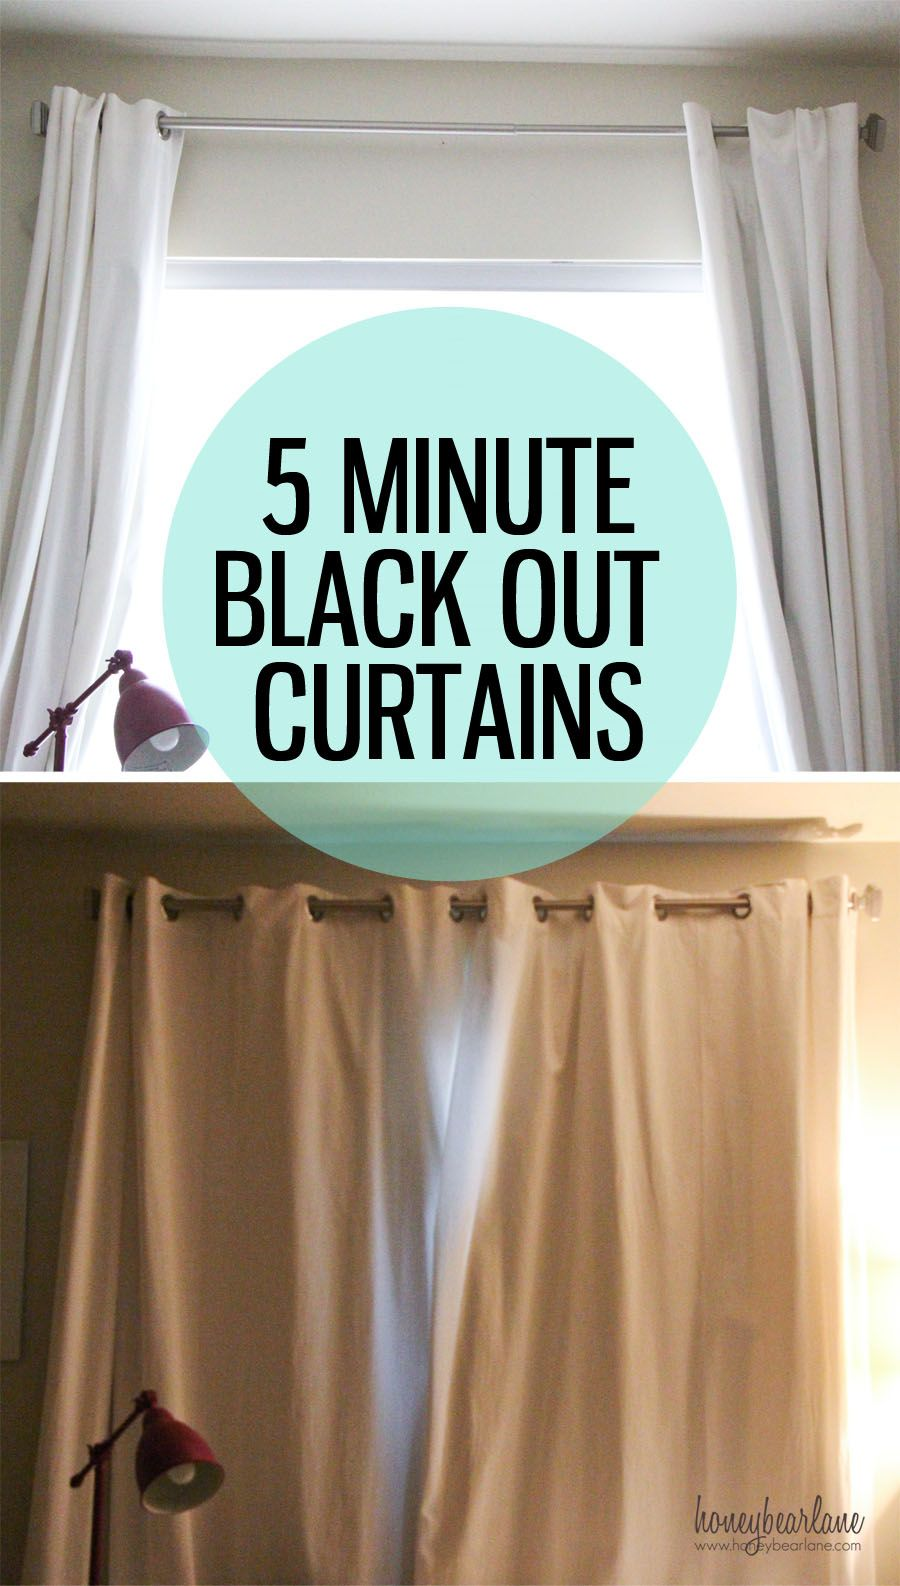 Turn regular curtains into Black Out Curtains with this simple trick!